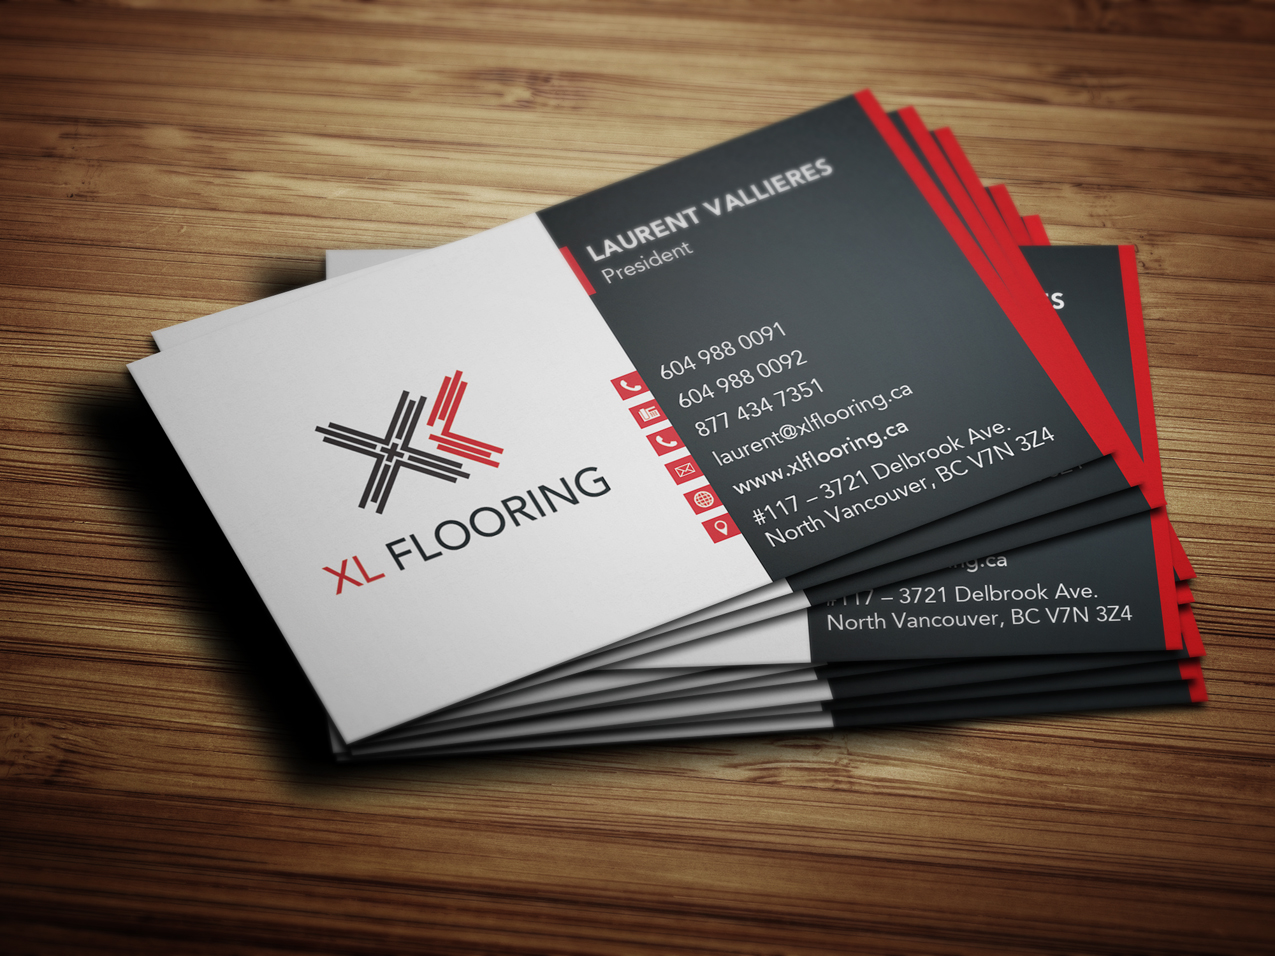 Flooring business card design flooring designs business card design for xl flooring solocube creative reheart Choice Image